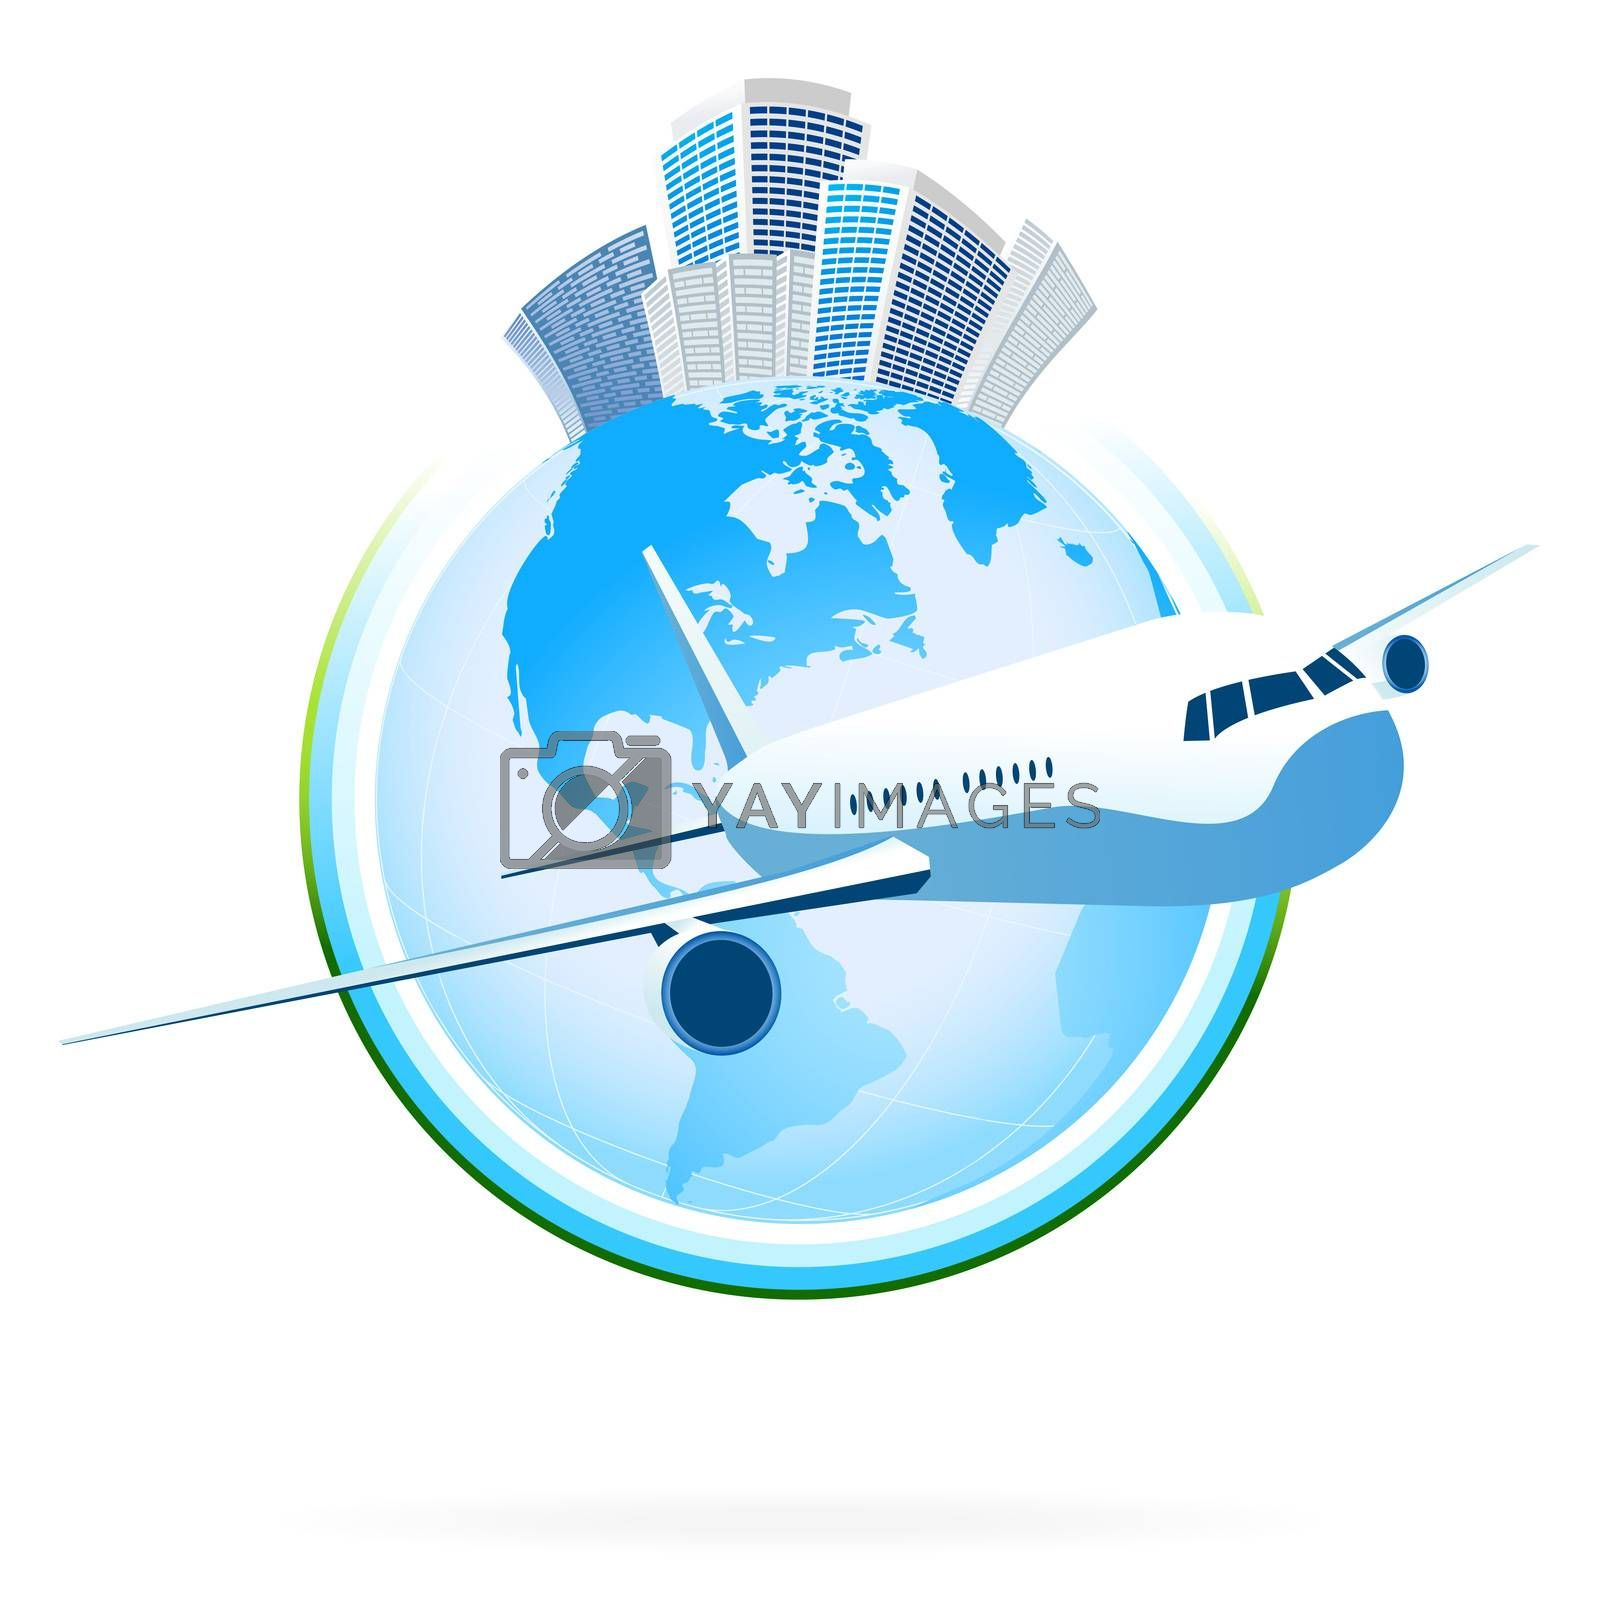 Business planet by WaD